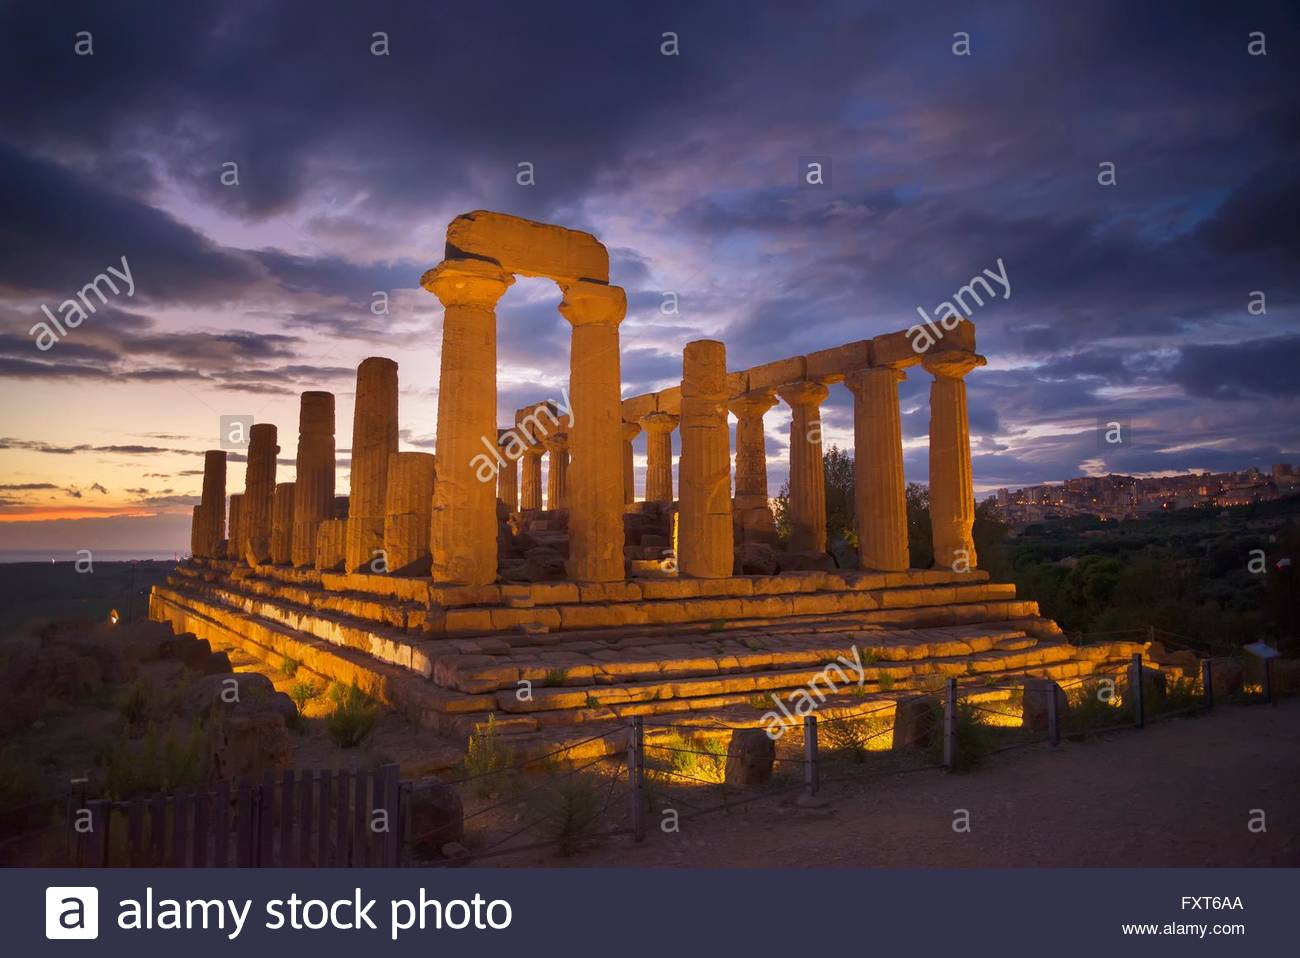 Floodlit Temple of Juno at dusk, Valley of the Temples, Agrigento, Sicily, Italy - Stock Image